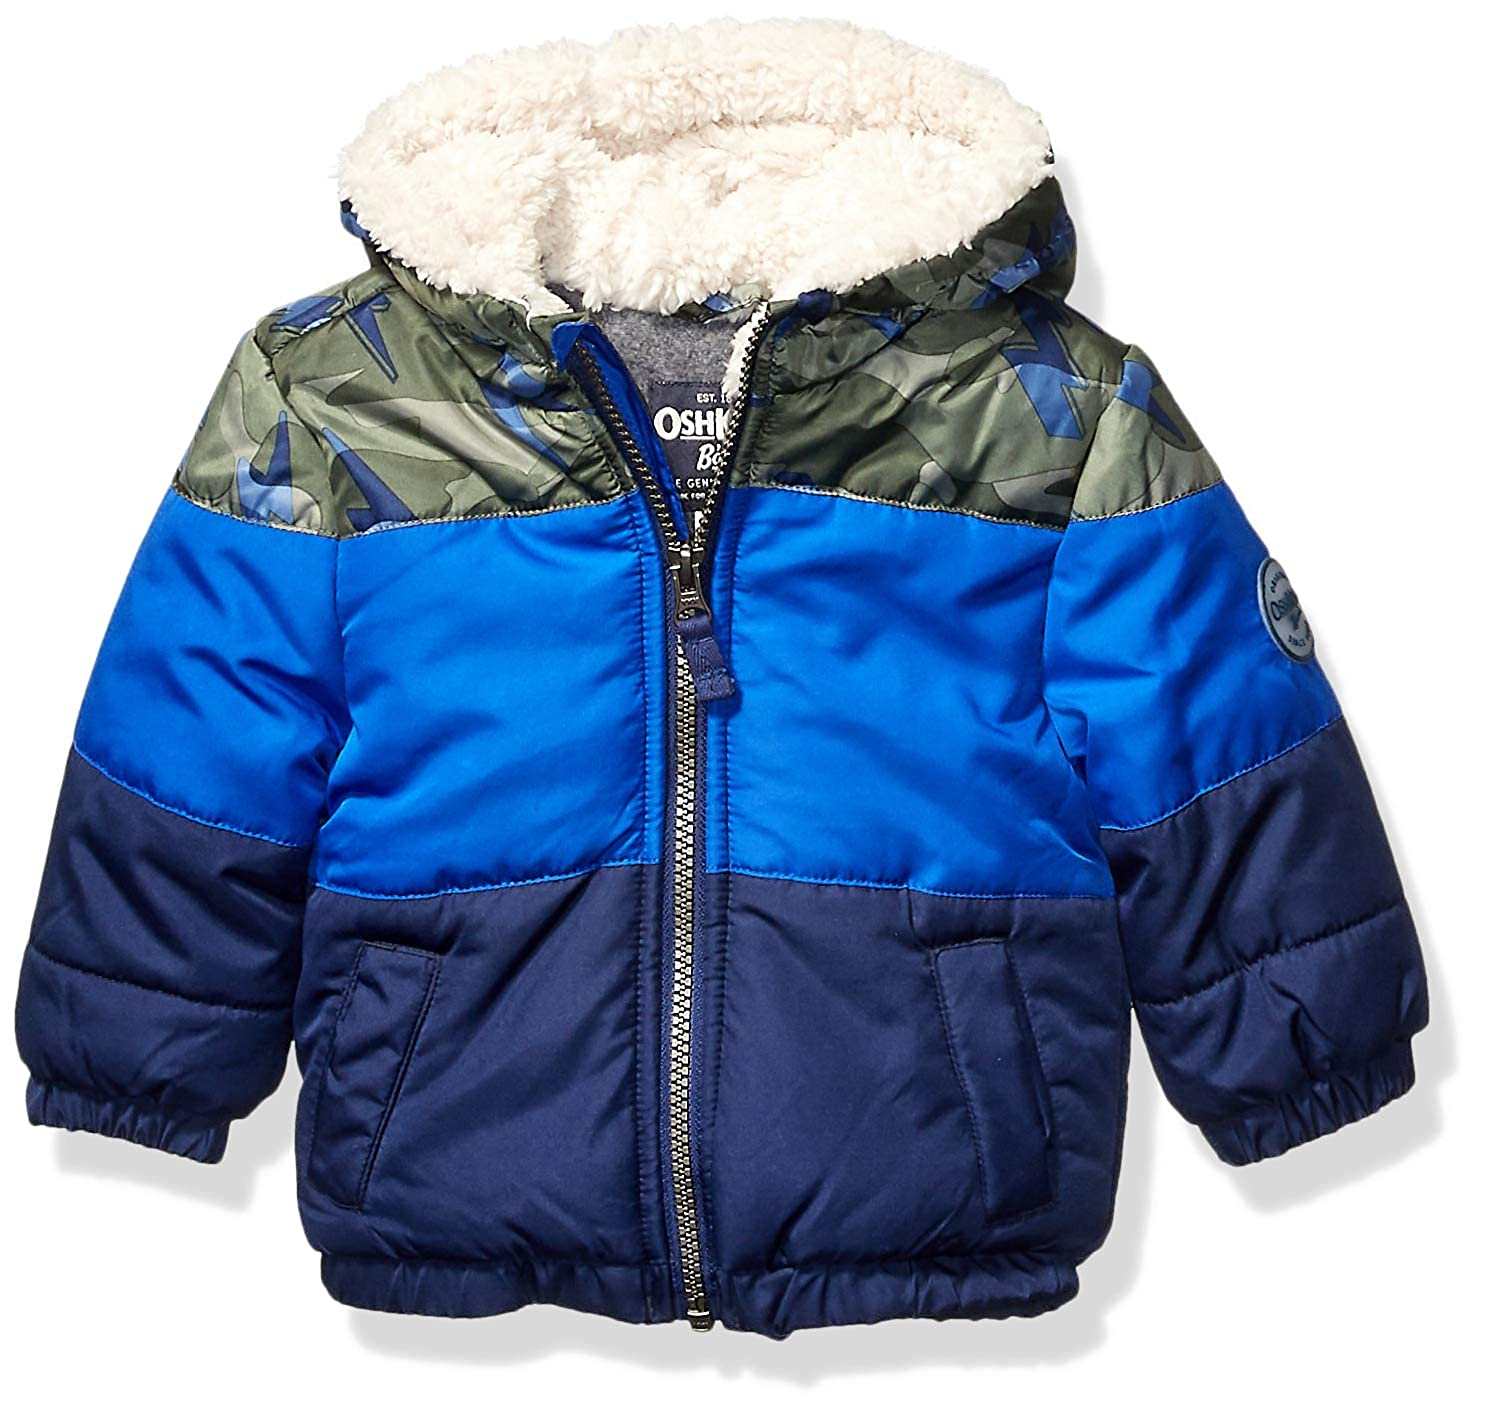 OshKosh BGosh Baby Boys Heavyweight Winter Jacket W//Sherpa Lining